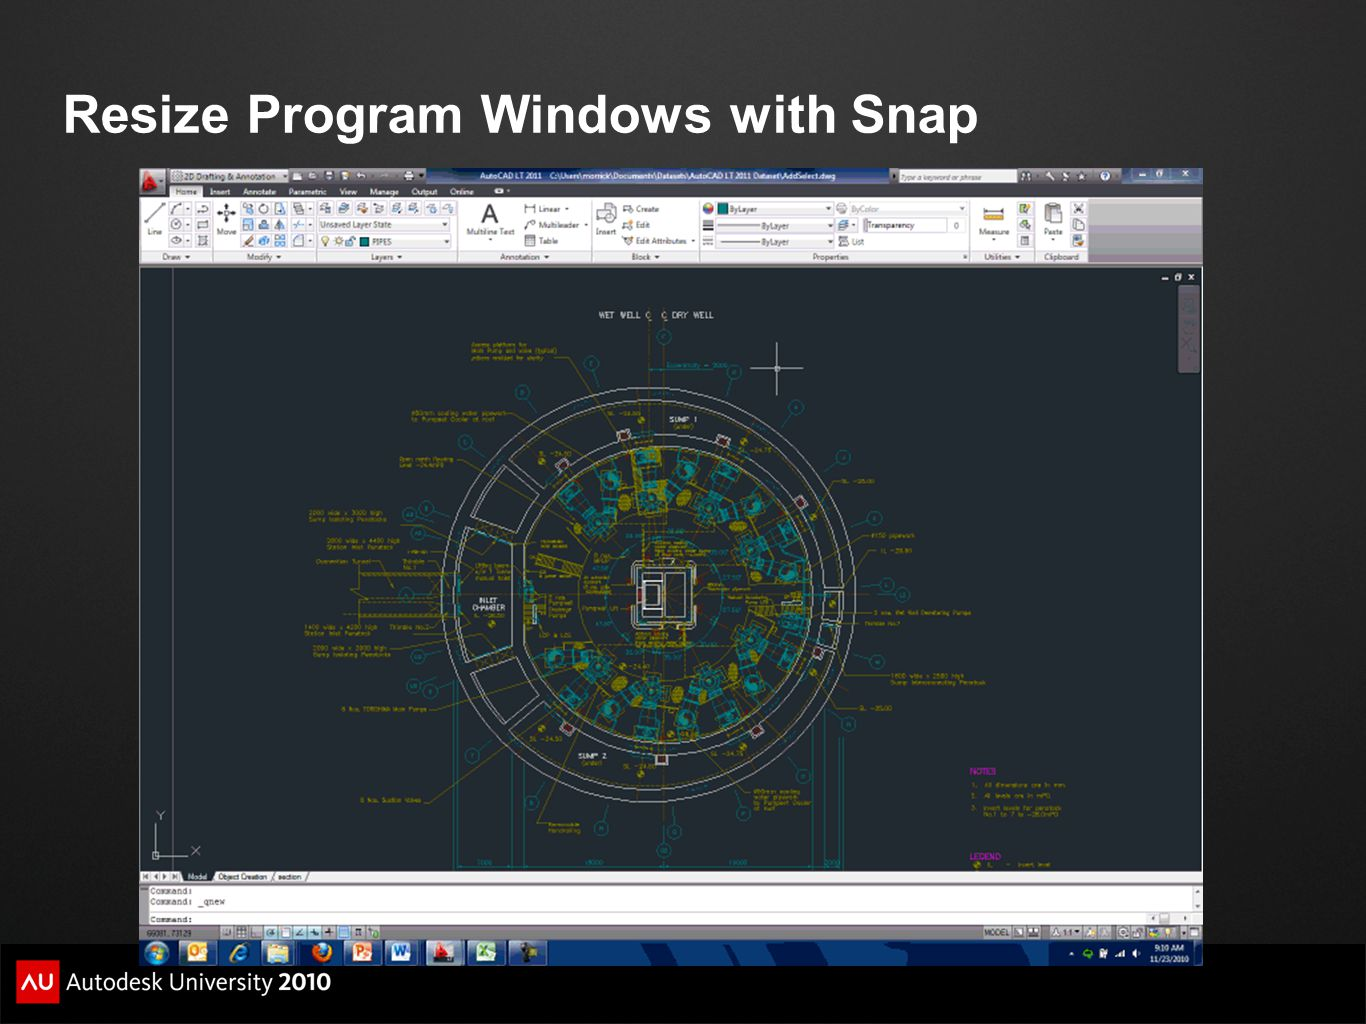 Resize Program Windows with Snap